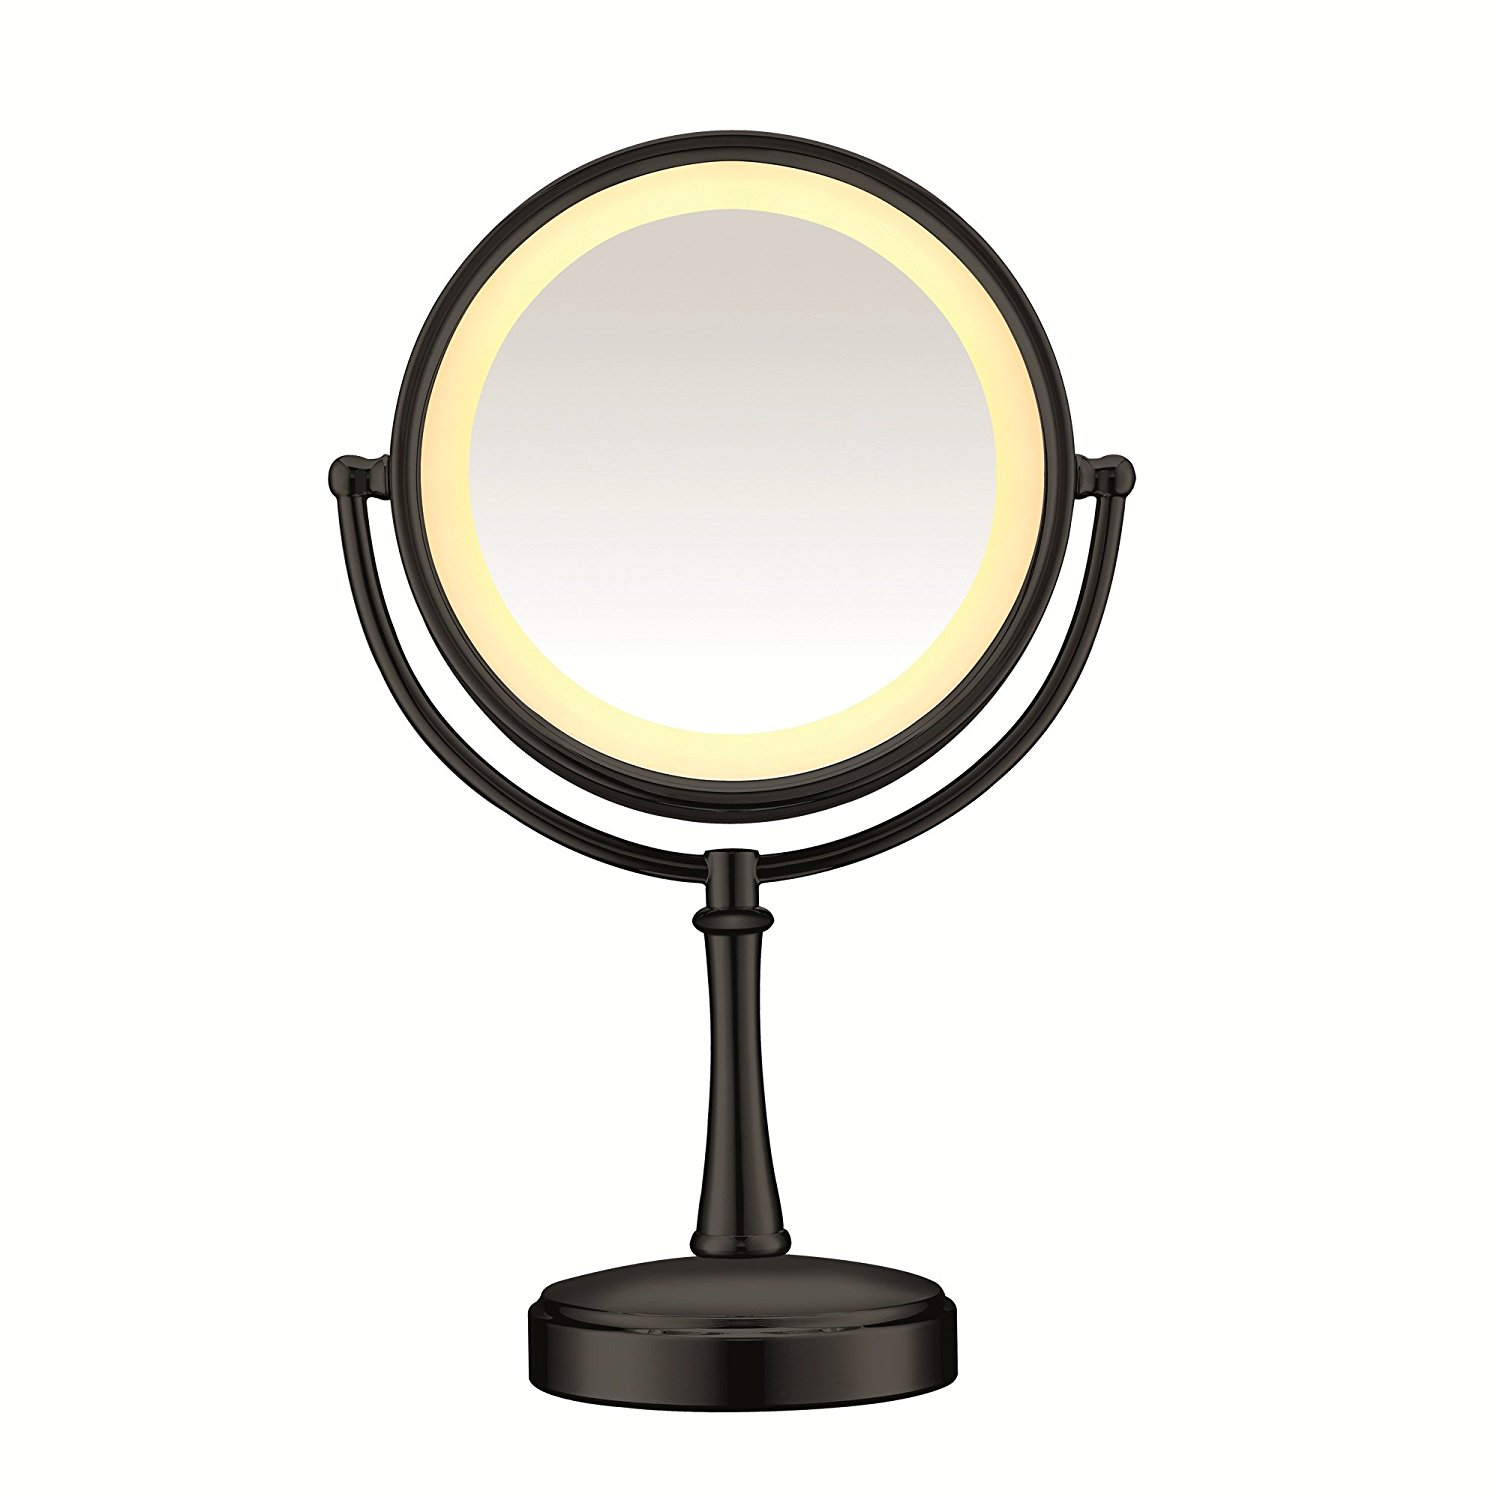 Conair Lighted Makeup Mirror | Conair Two-sided Makeup Mirror with 4 Light Settings | Lighted Mirror Walmart